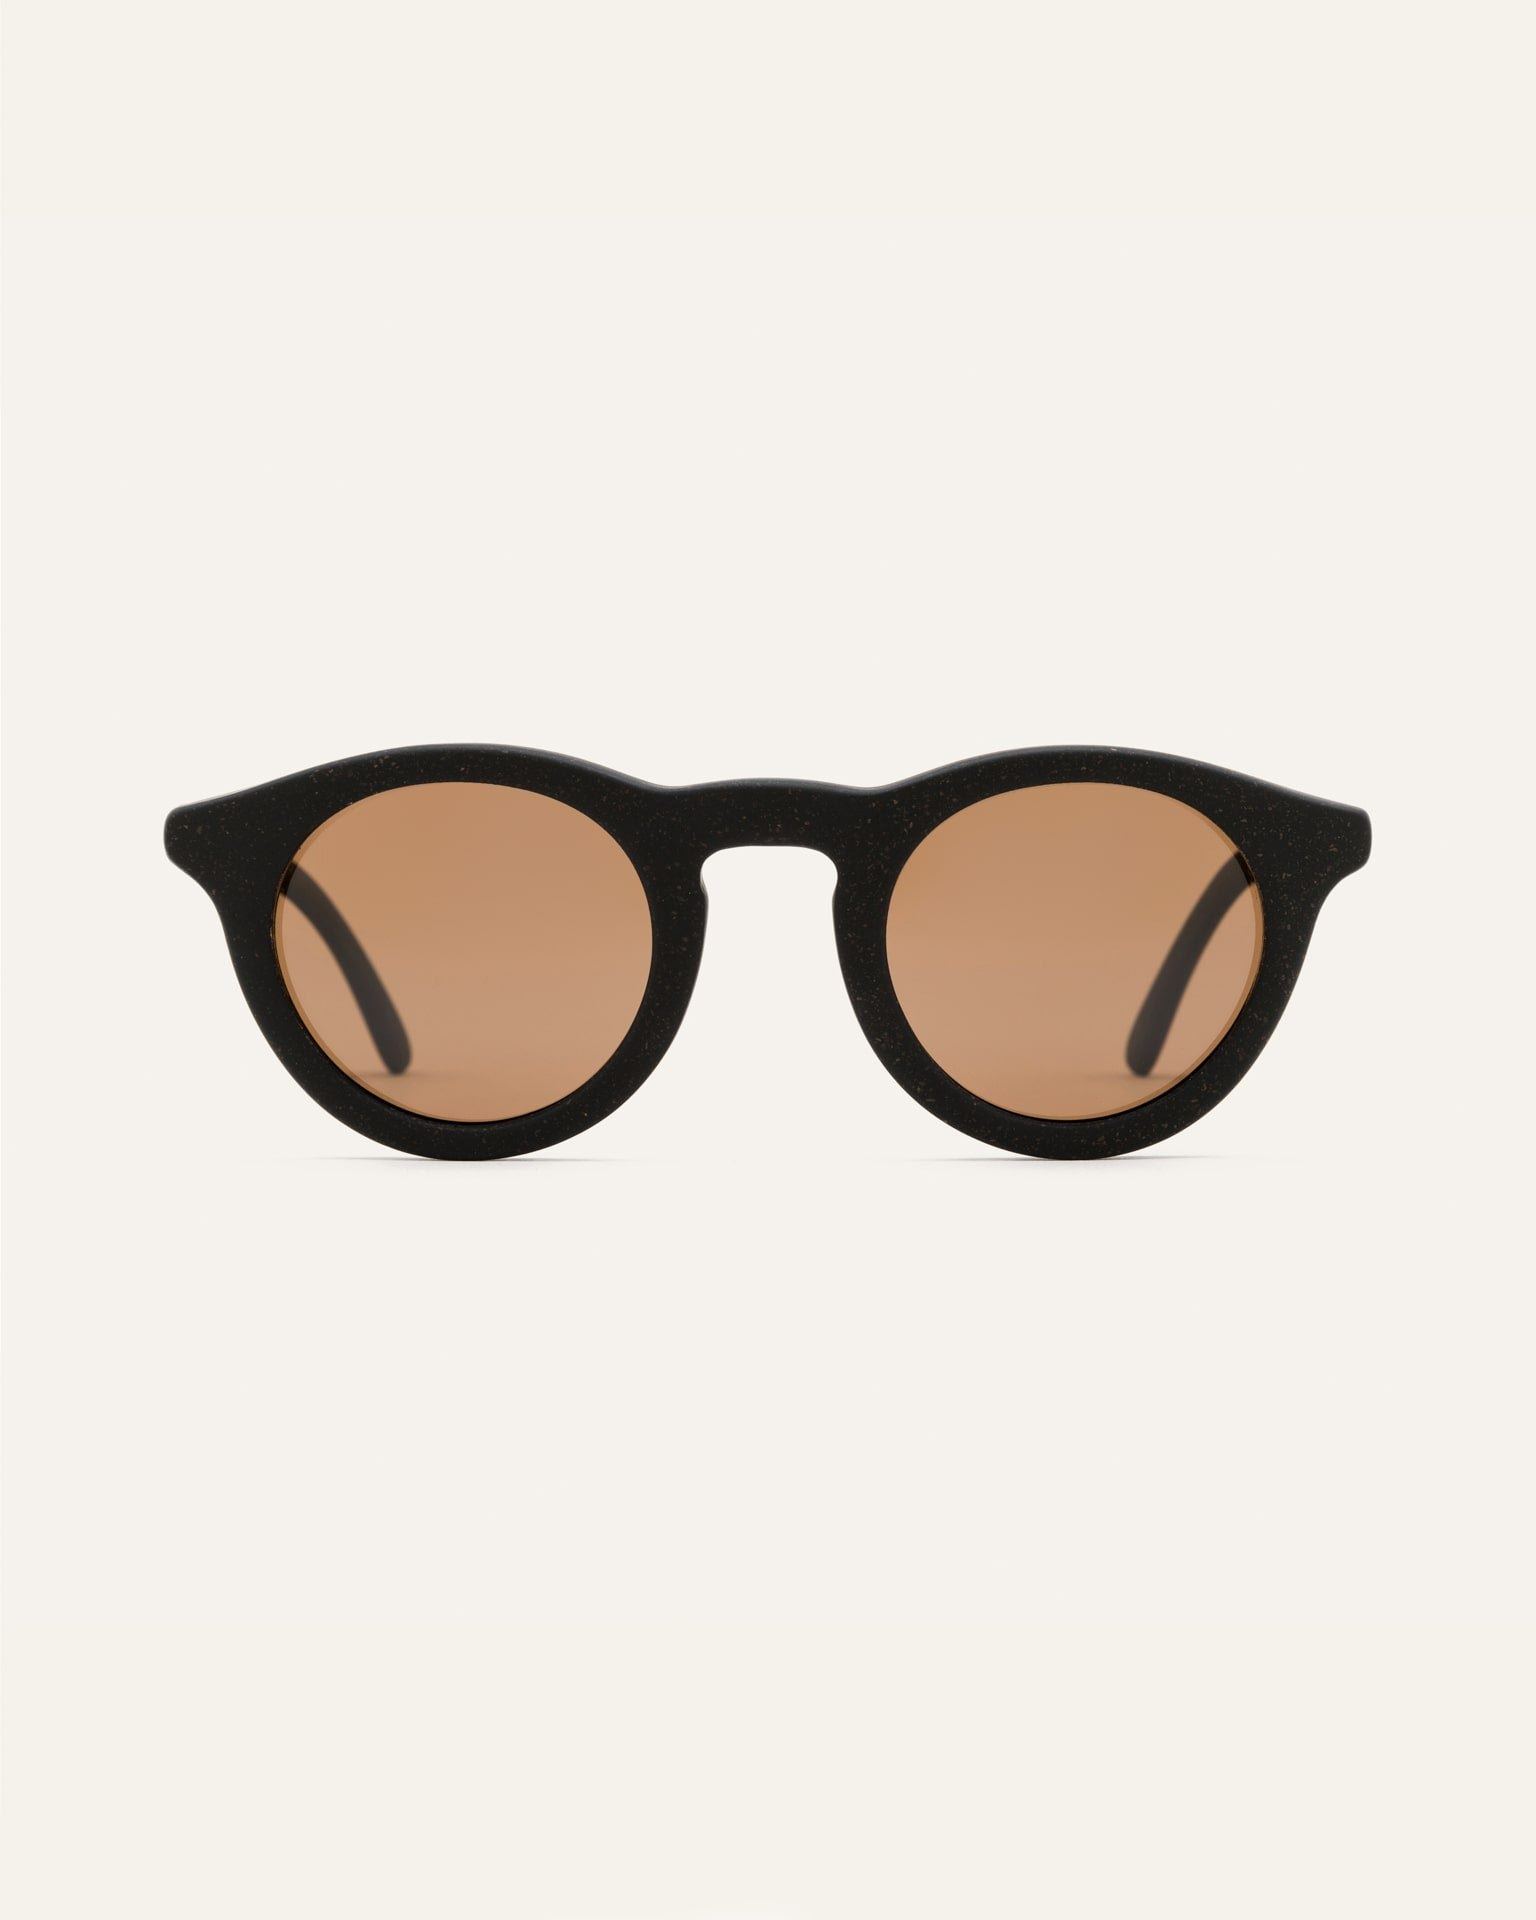 sunglasses with brown round lenses